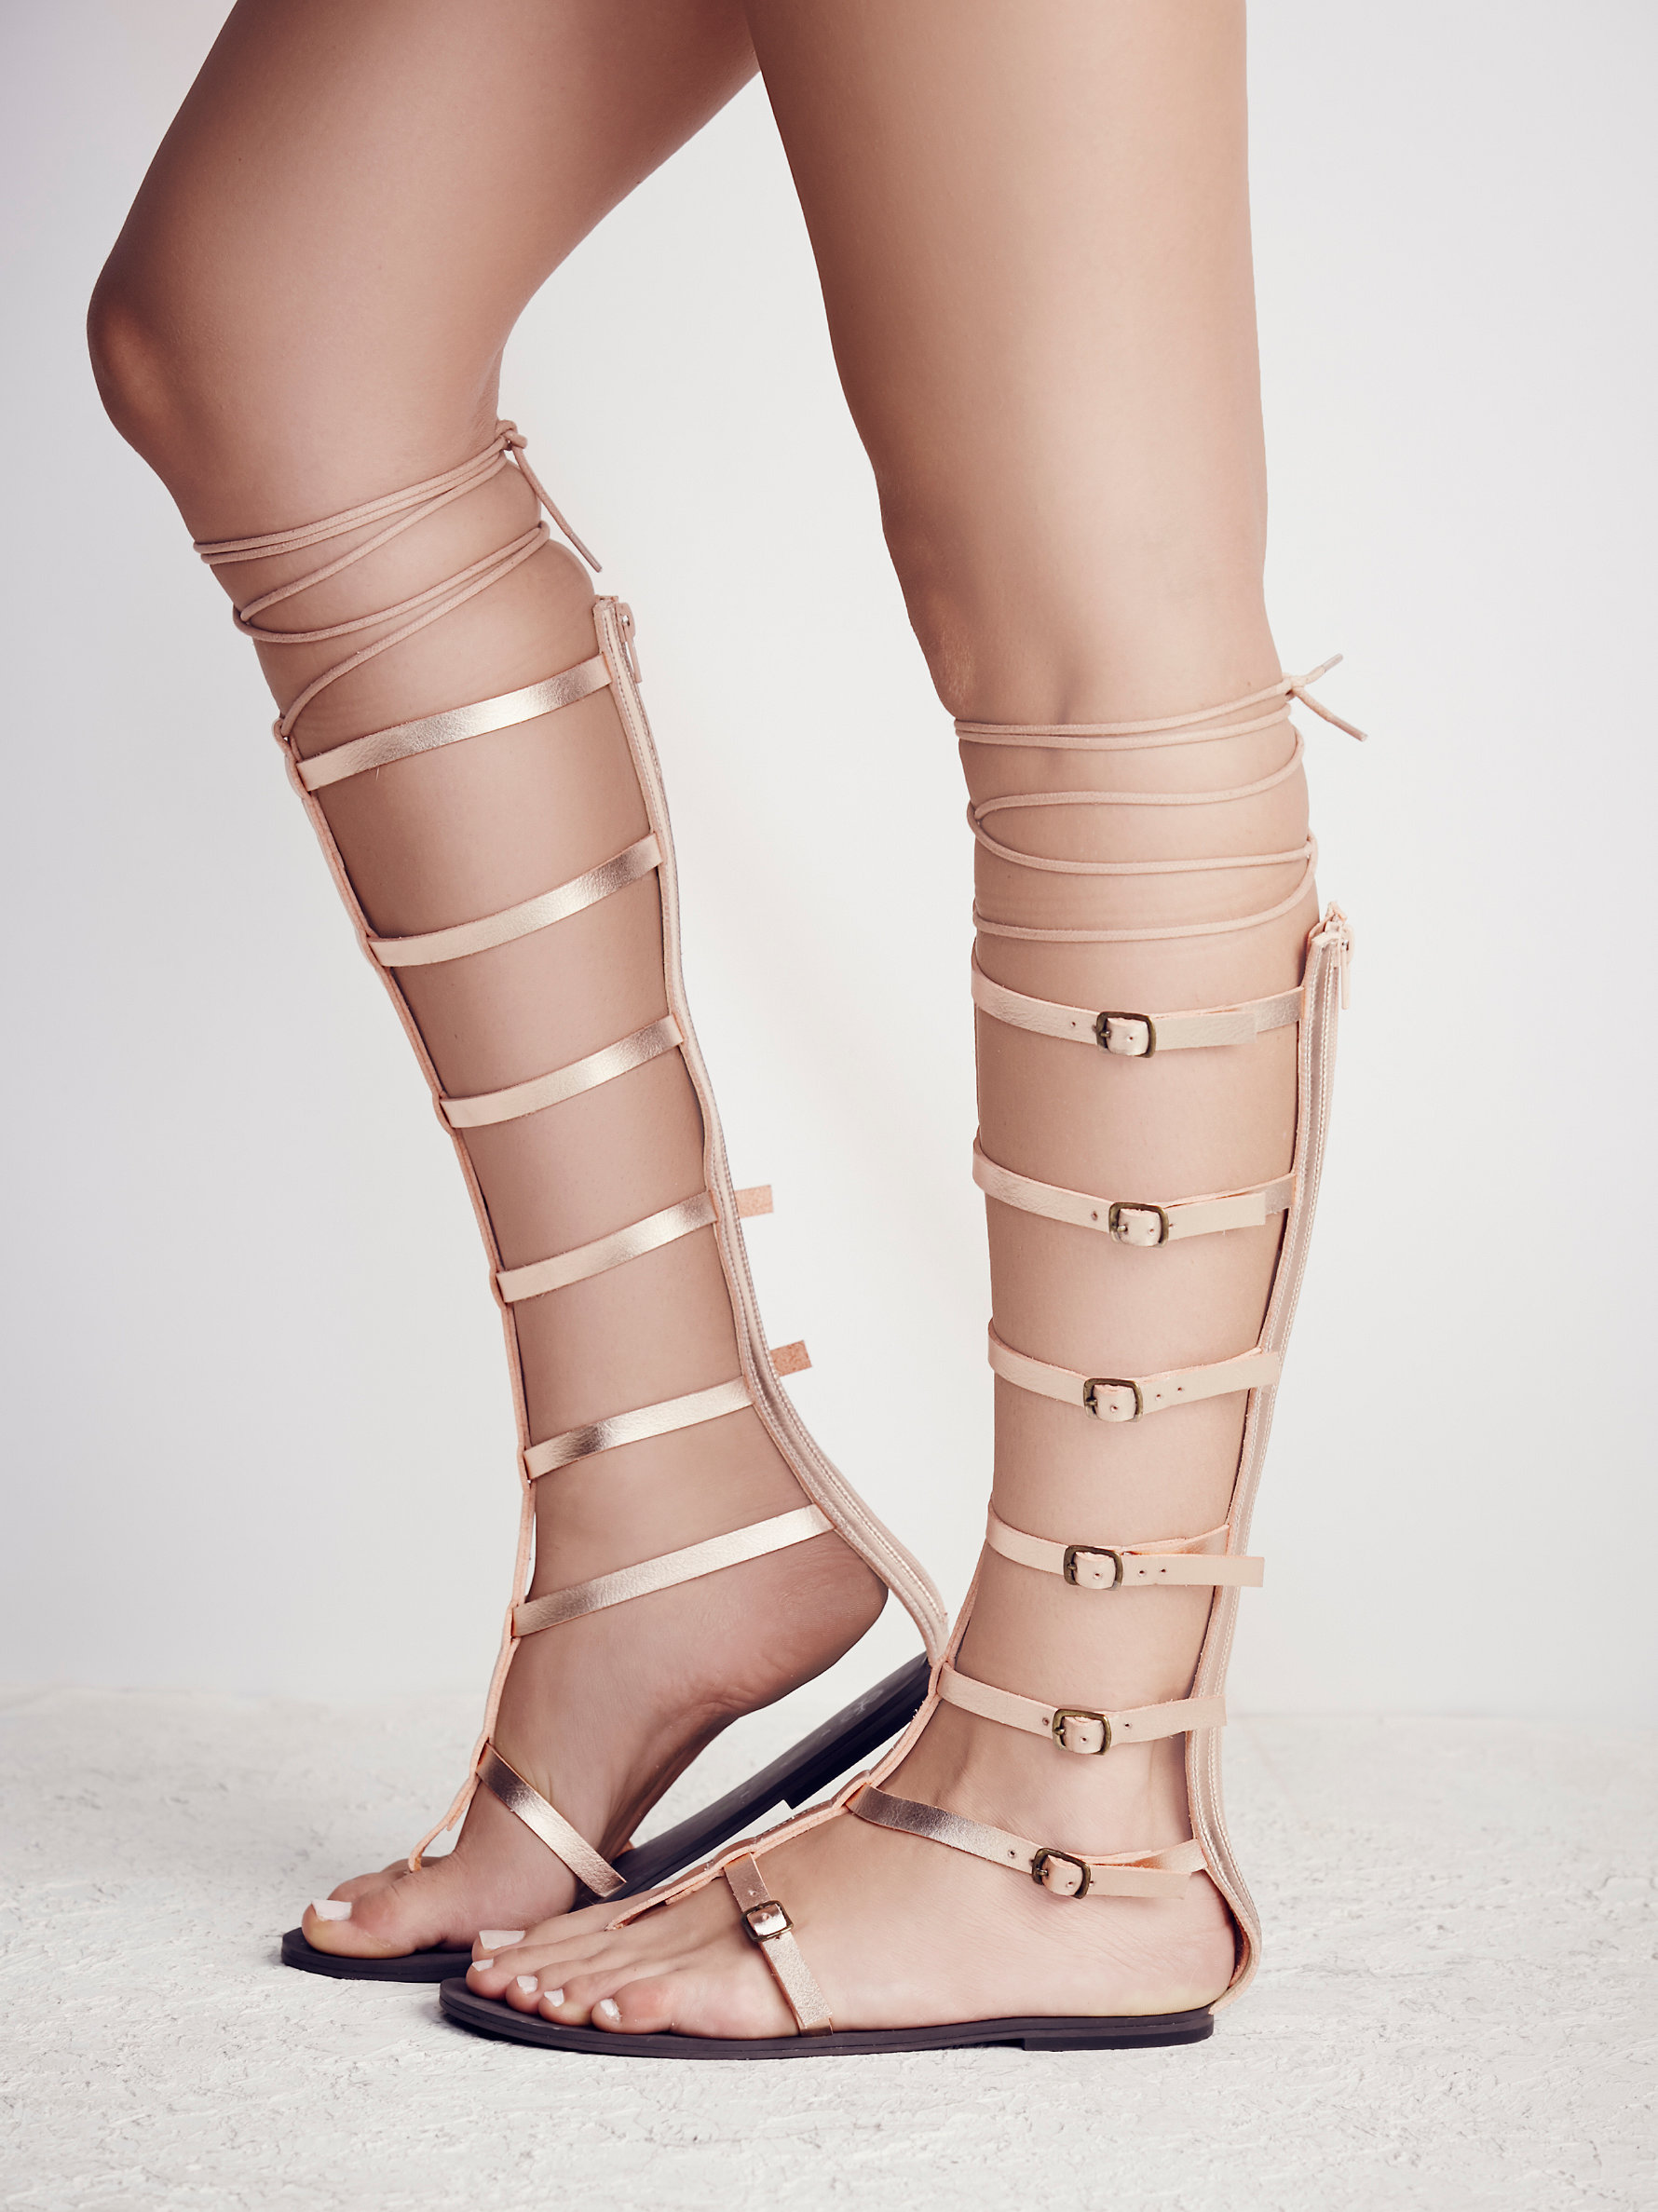 Free People's Sexy Strappy Sandals - Faryl Robin + Free People Vegan Jayden Gladiator at Free People Clothing Boutique